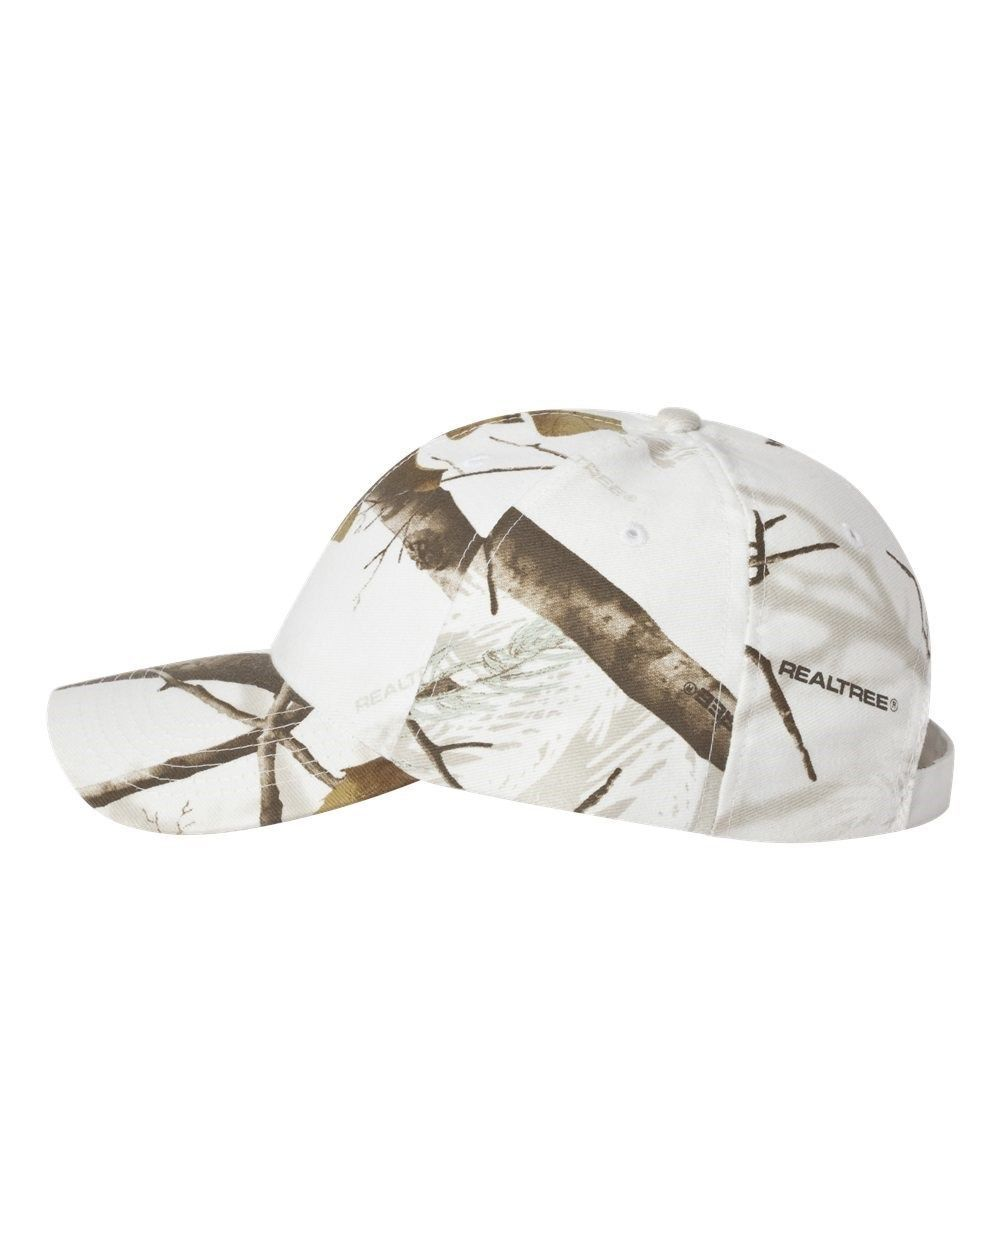 ea6cc4c4135 Kati Cap NEW Realtree AP Snow Mossy Oak Break Up Blaze Camo Camouflage Hat  SN200 picclick.com